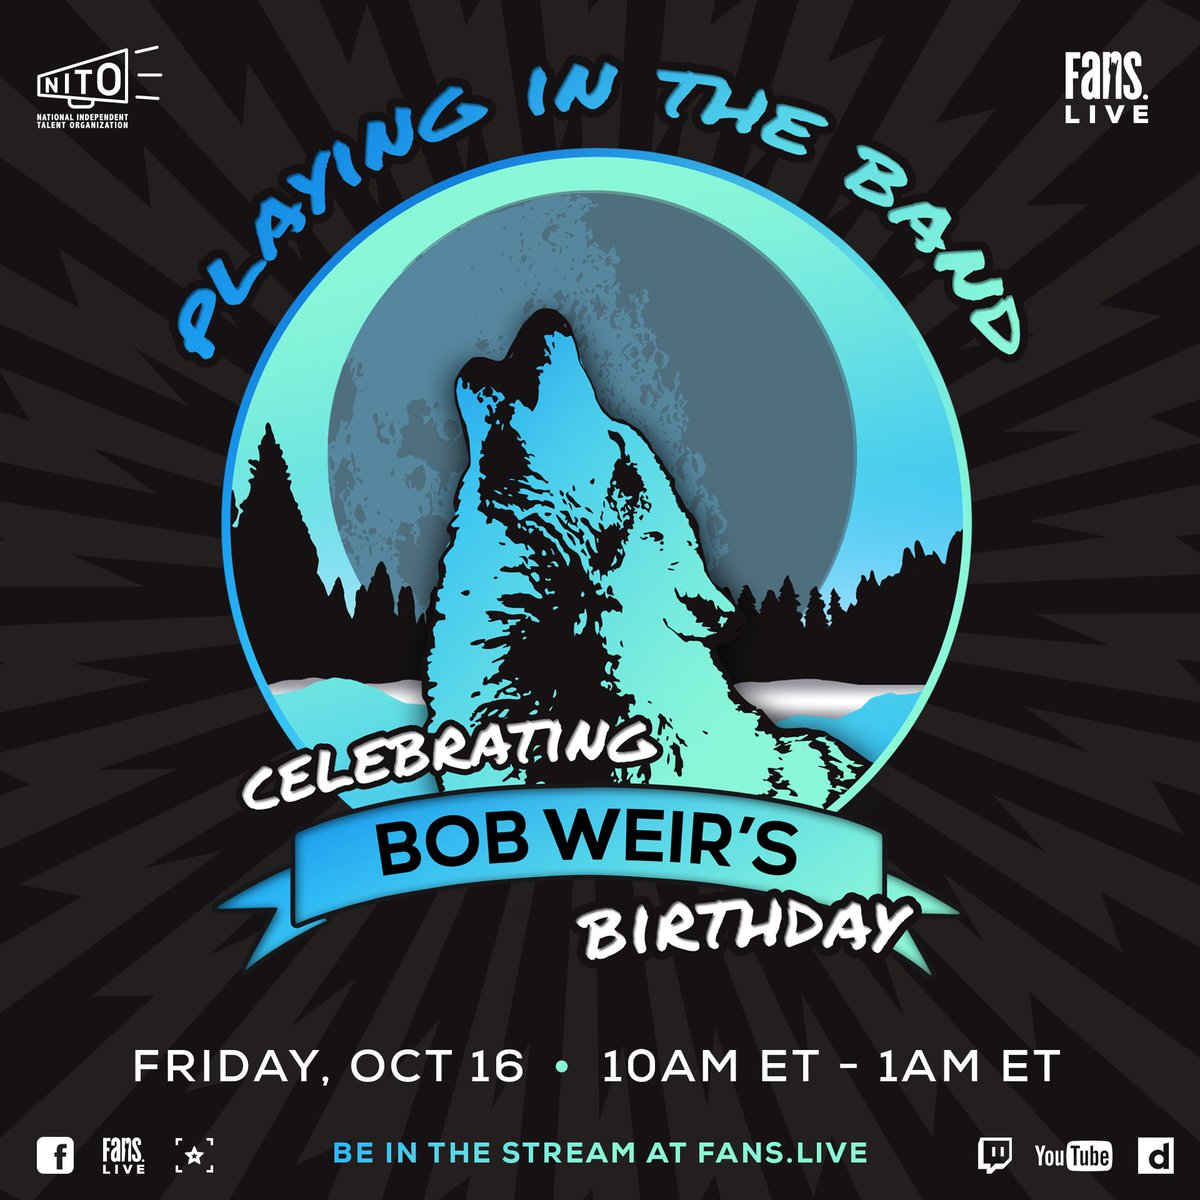 Today, on my birthday, @FansBelongHere is hosting a stream of archival shows, memories, musical selections and more. Tune in starting at 10am ET and support the @NITO_Live while you watch here: fans.live.